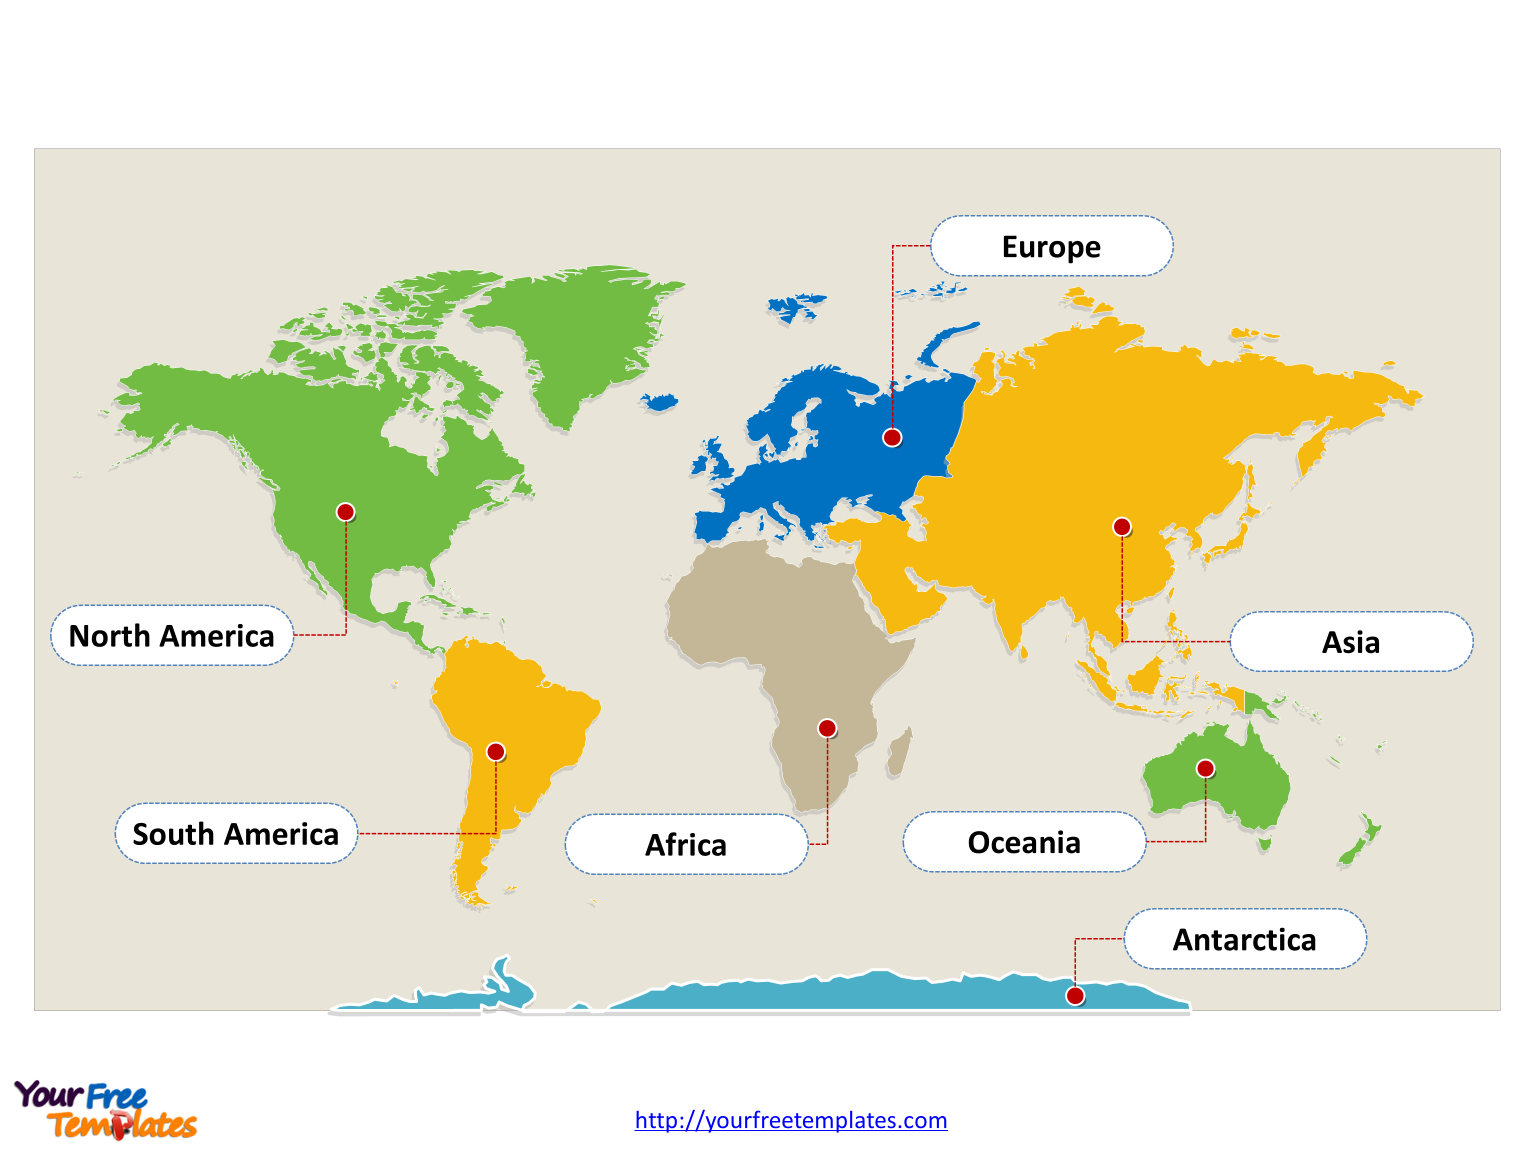 continent world map - Seroton.ponderresearch.co